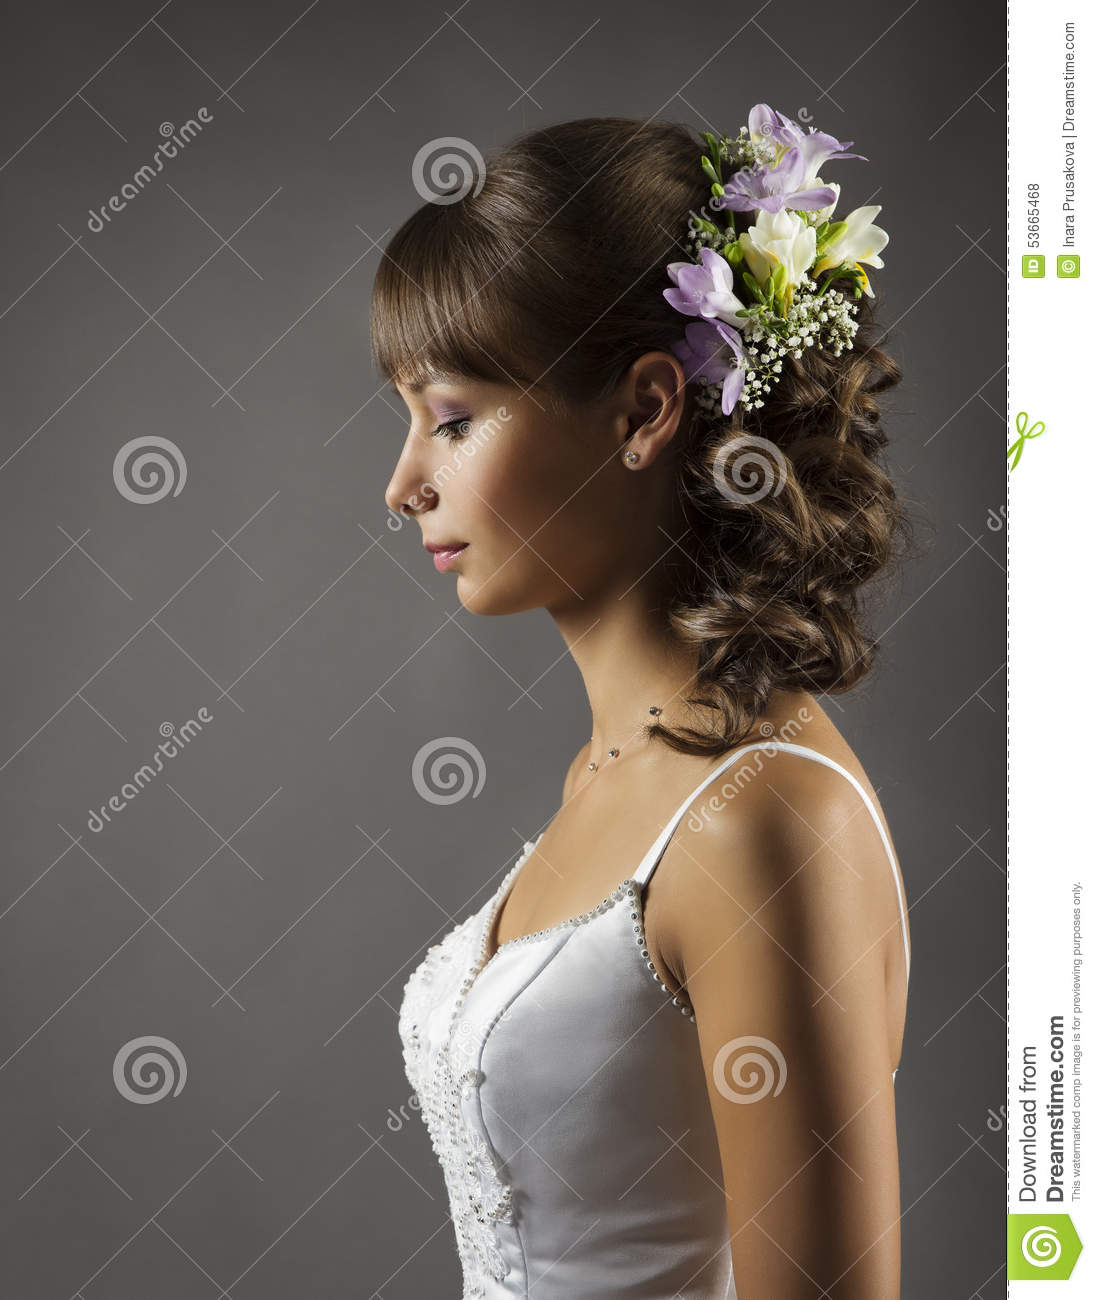 bridal hair style portrait wedding hairstyle flowers bridal hair 7746